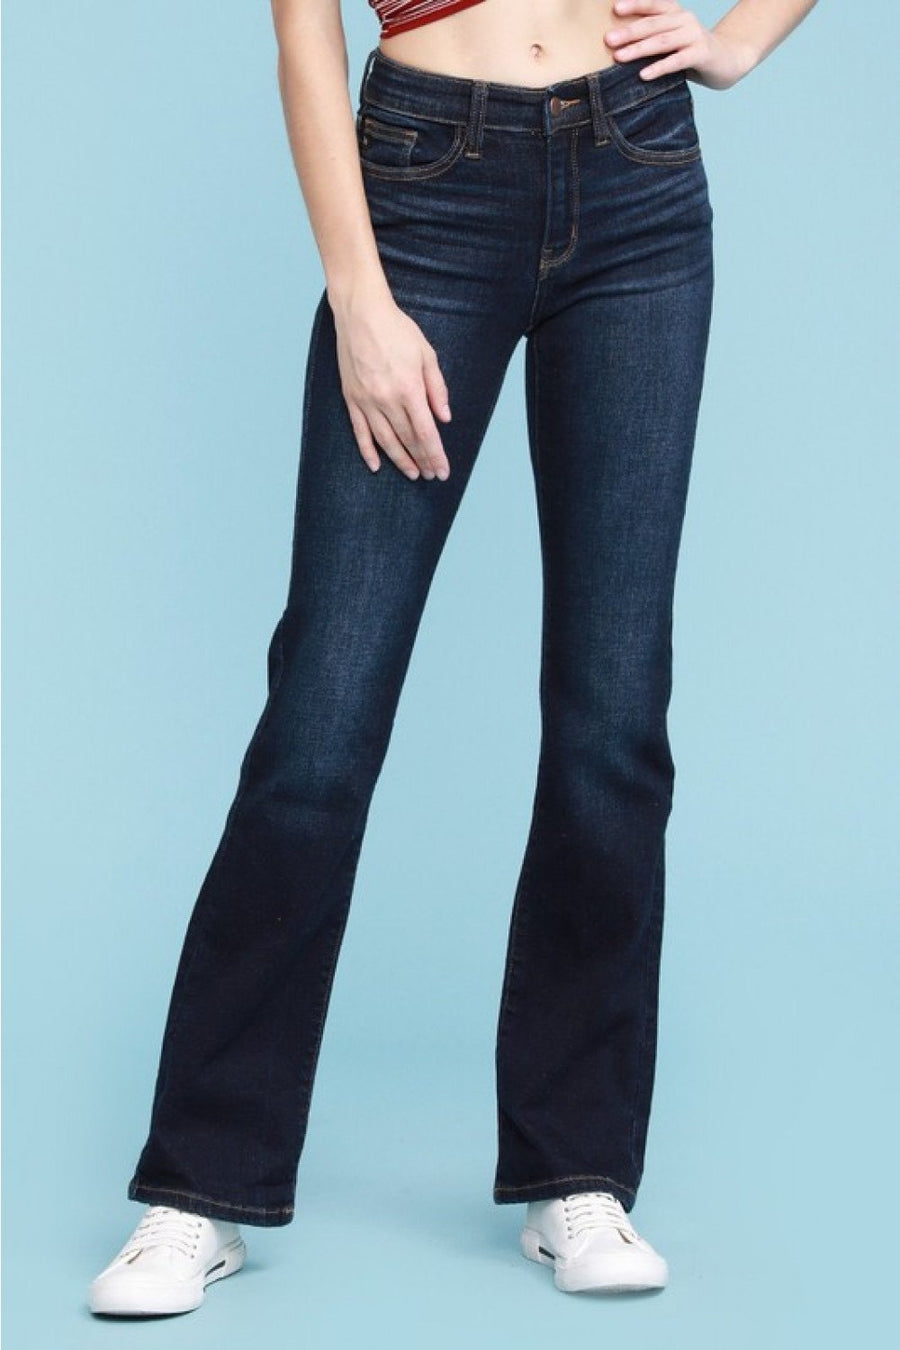 """Whiskered Dark Bootcut"" Judy Blue 32"" 82361"